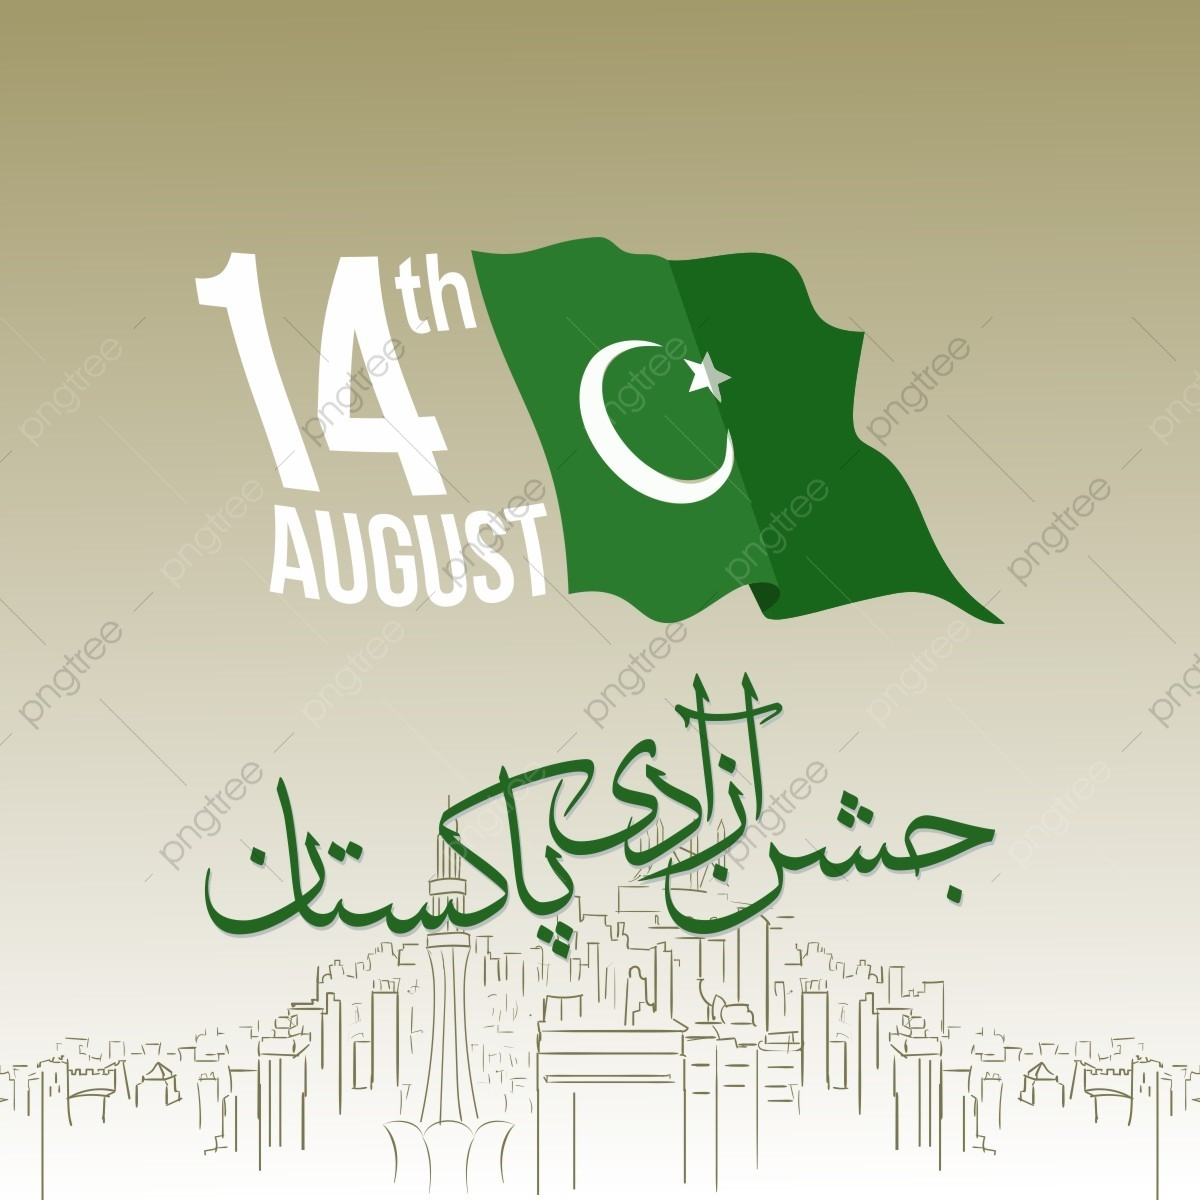 Pakistan Happy Independence Day 14 August 14 August Happy Pakistan Happy 14 August Pakistan Pakistan August 14 Png And Vector With Transparent Background For Free Download